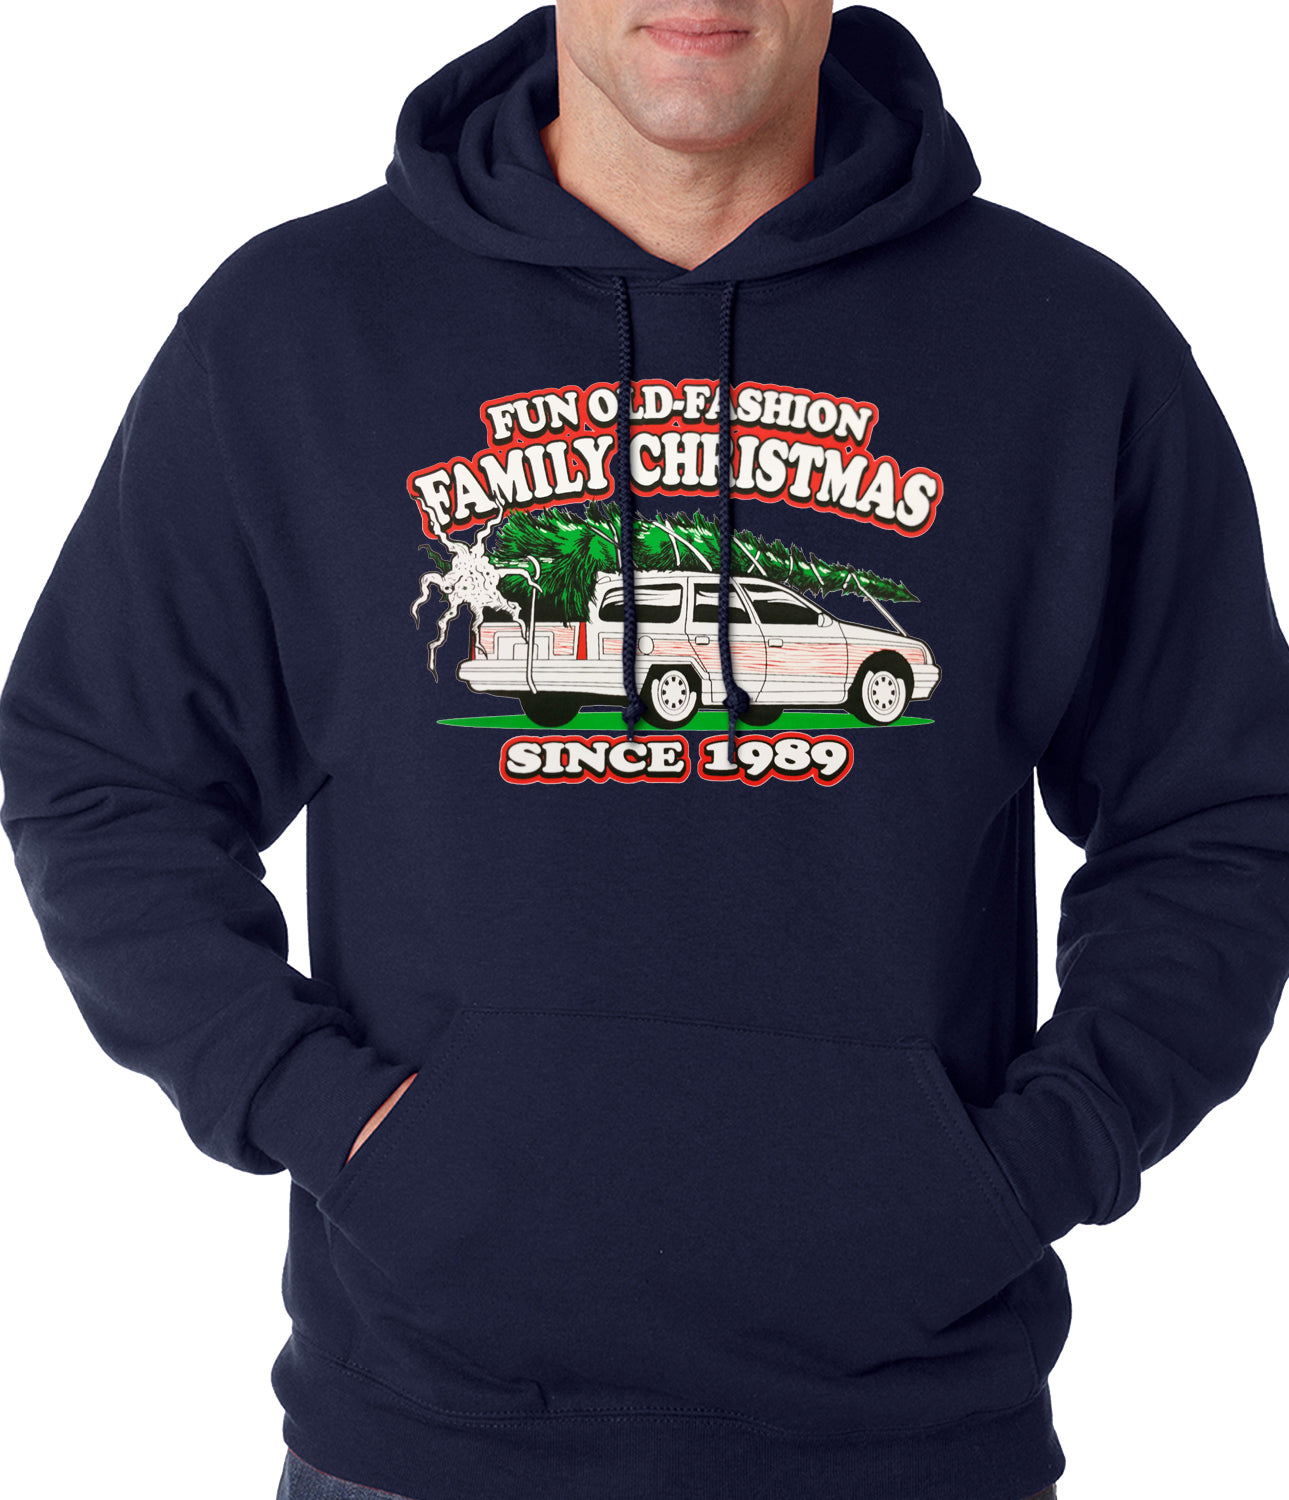 Fun Old-Fashioned Family Christmas Since 1989 Adult Hoodie